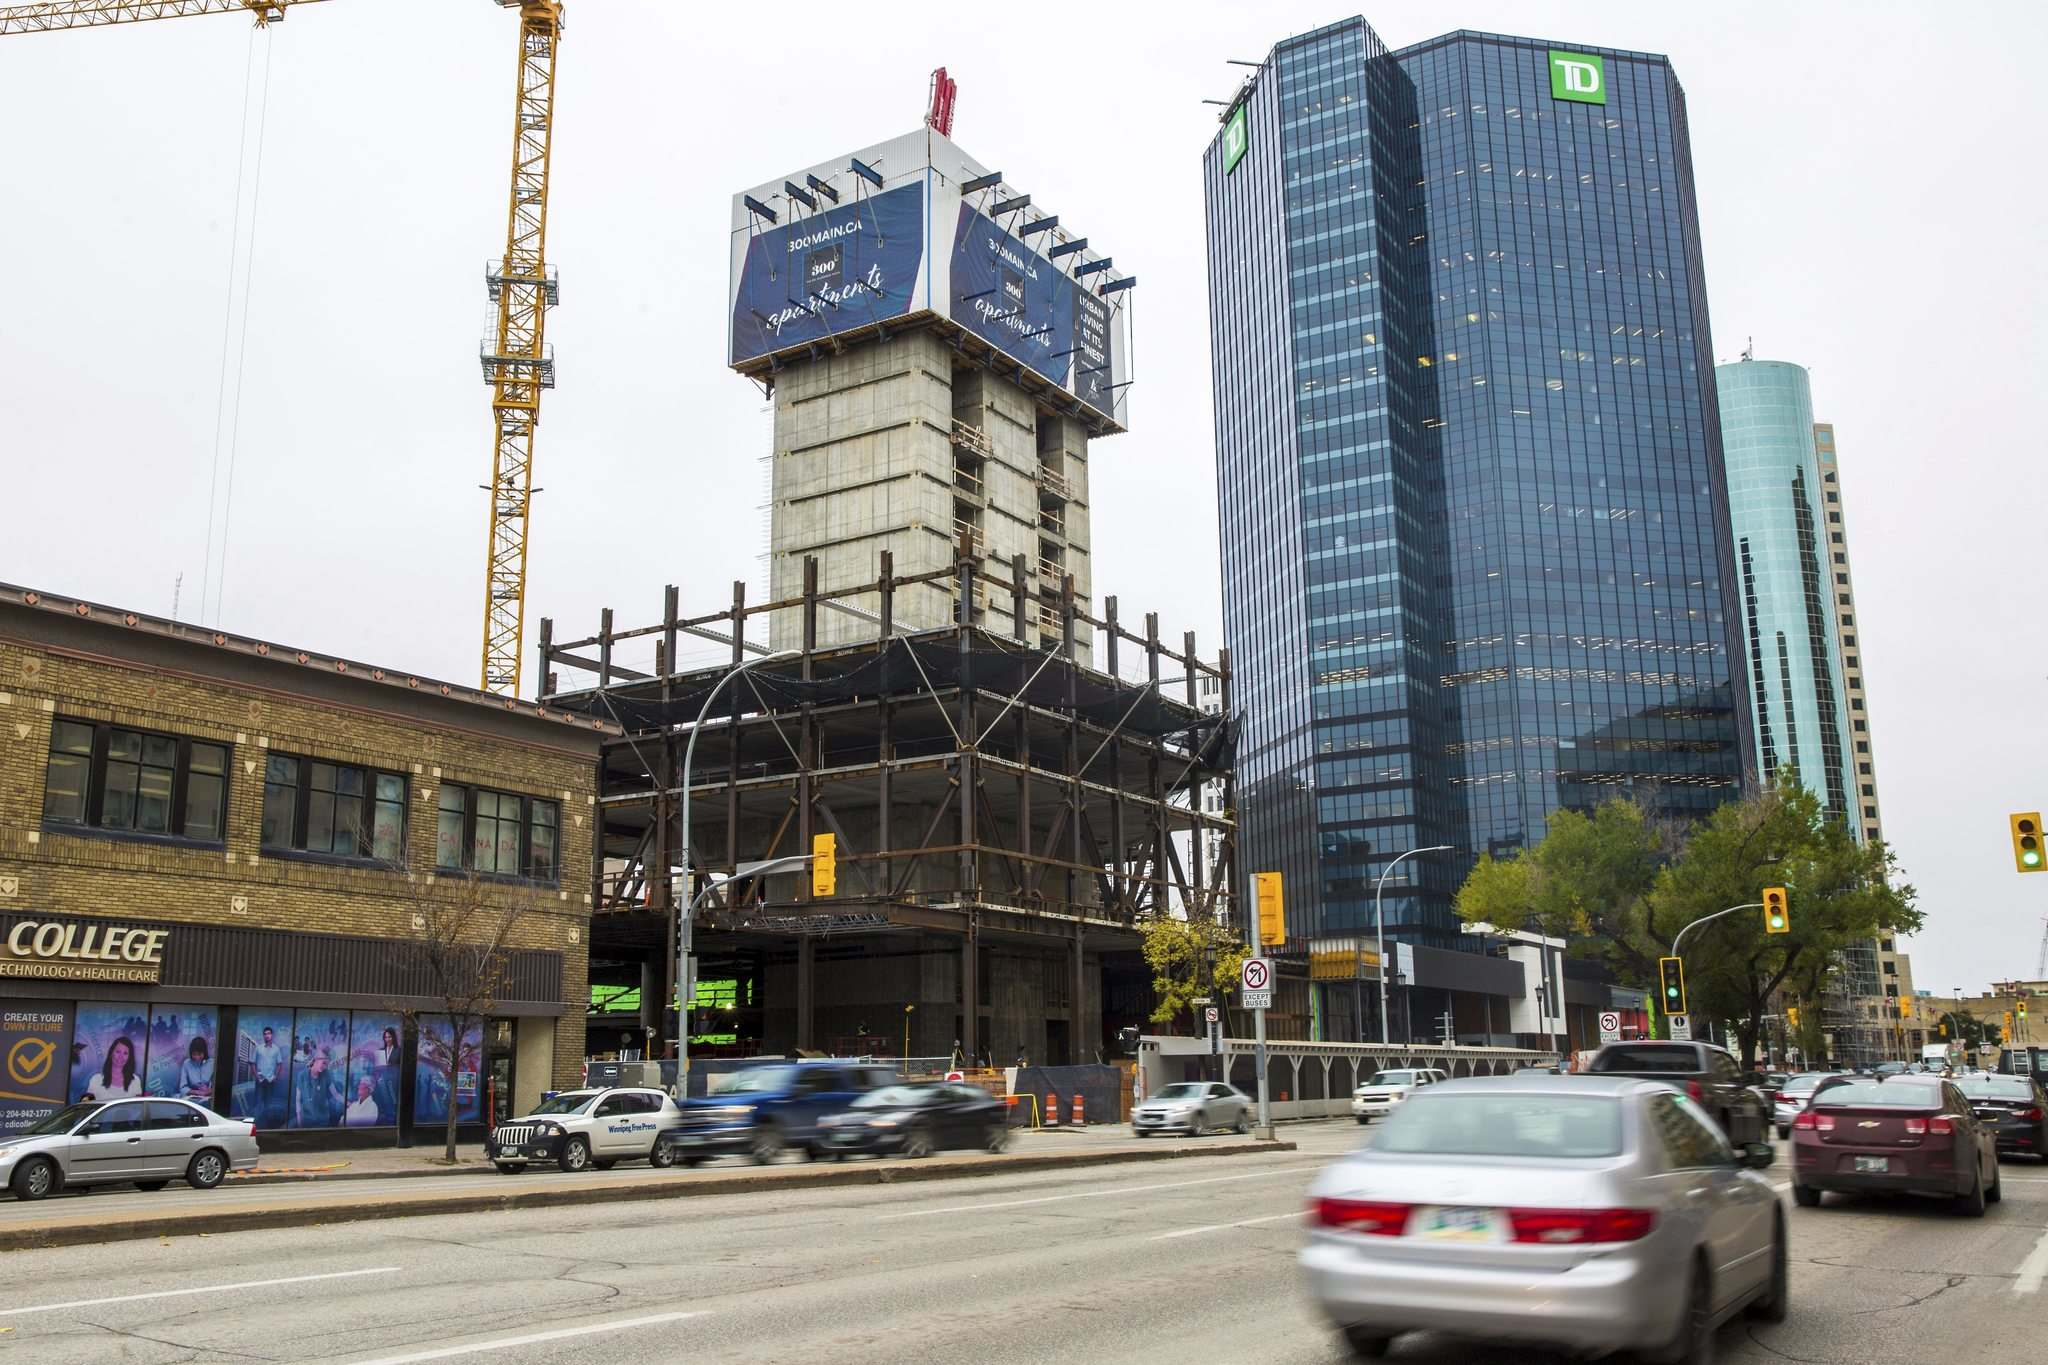 MIKAELA MACKENZIE / WINNIPEG FREE PRESS</p><p>Construction continues on the Artis REIT apartment tower on Main Street on Wednesday. The 40-storey, 400-unit building is now expected to open in the third quarter of 2021.</p>